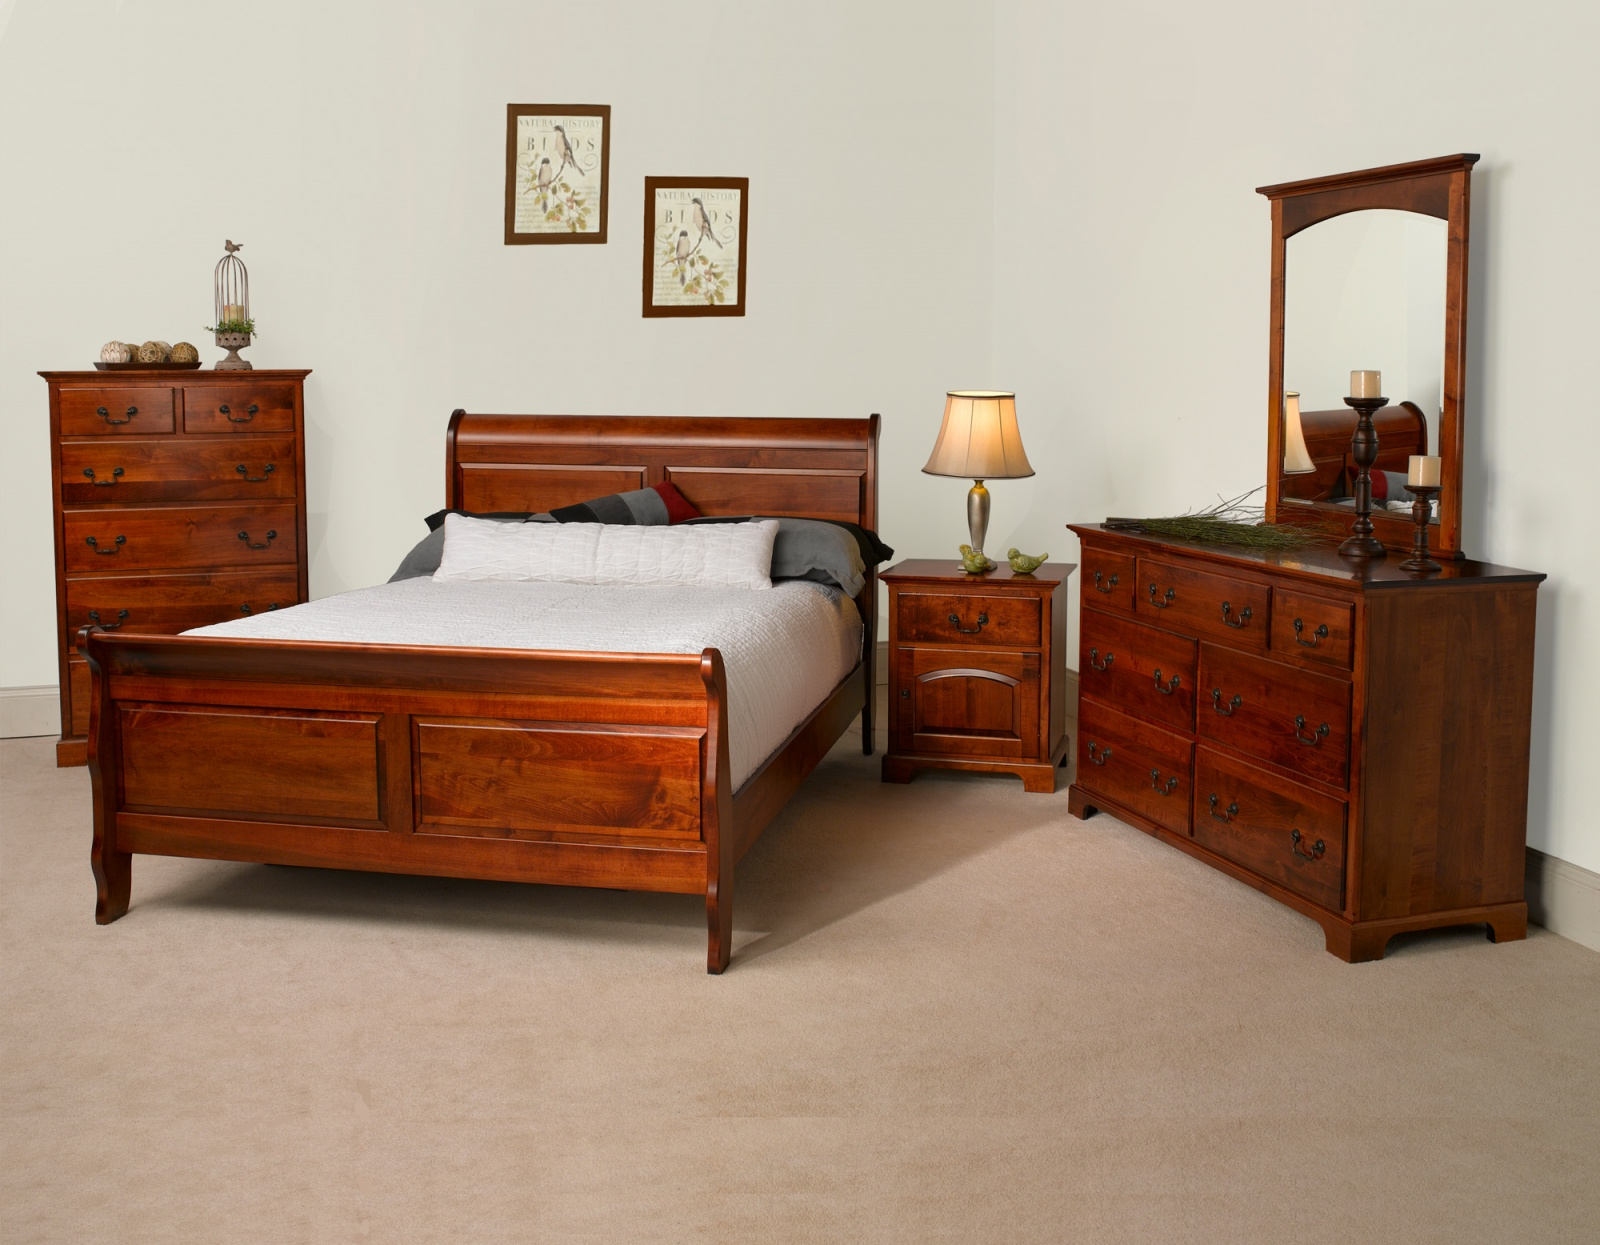 Sonora Setting with Sleigh Bed.jpg